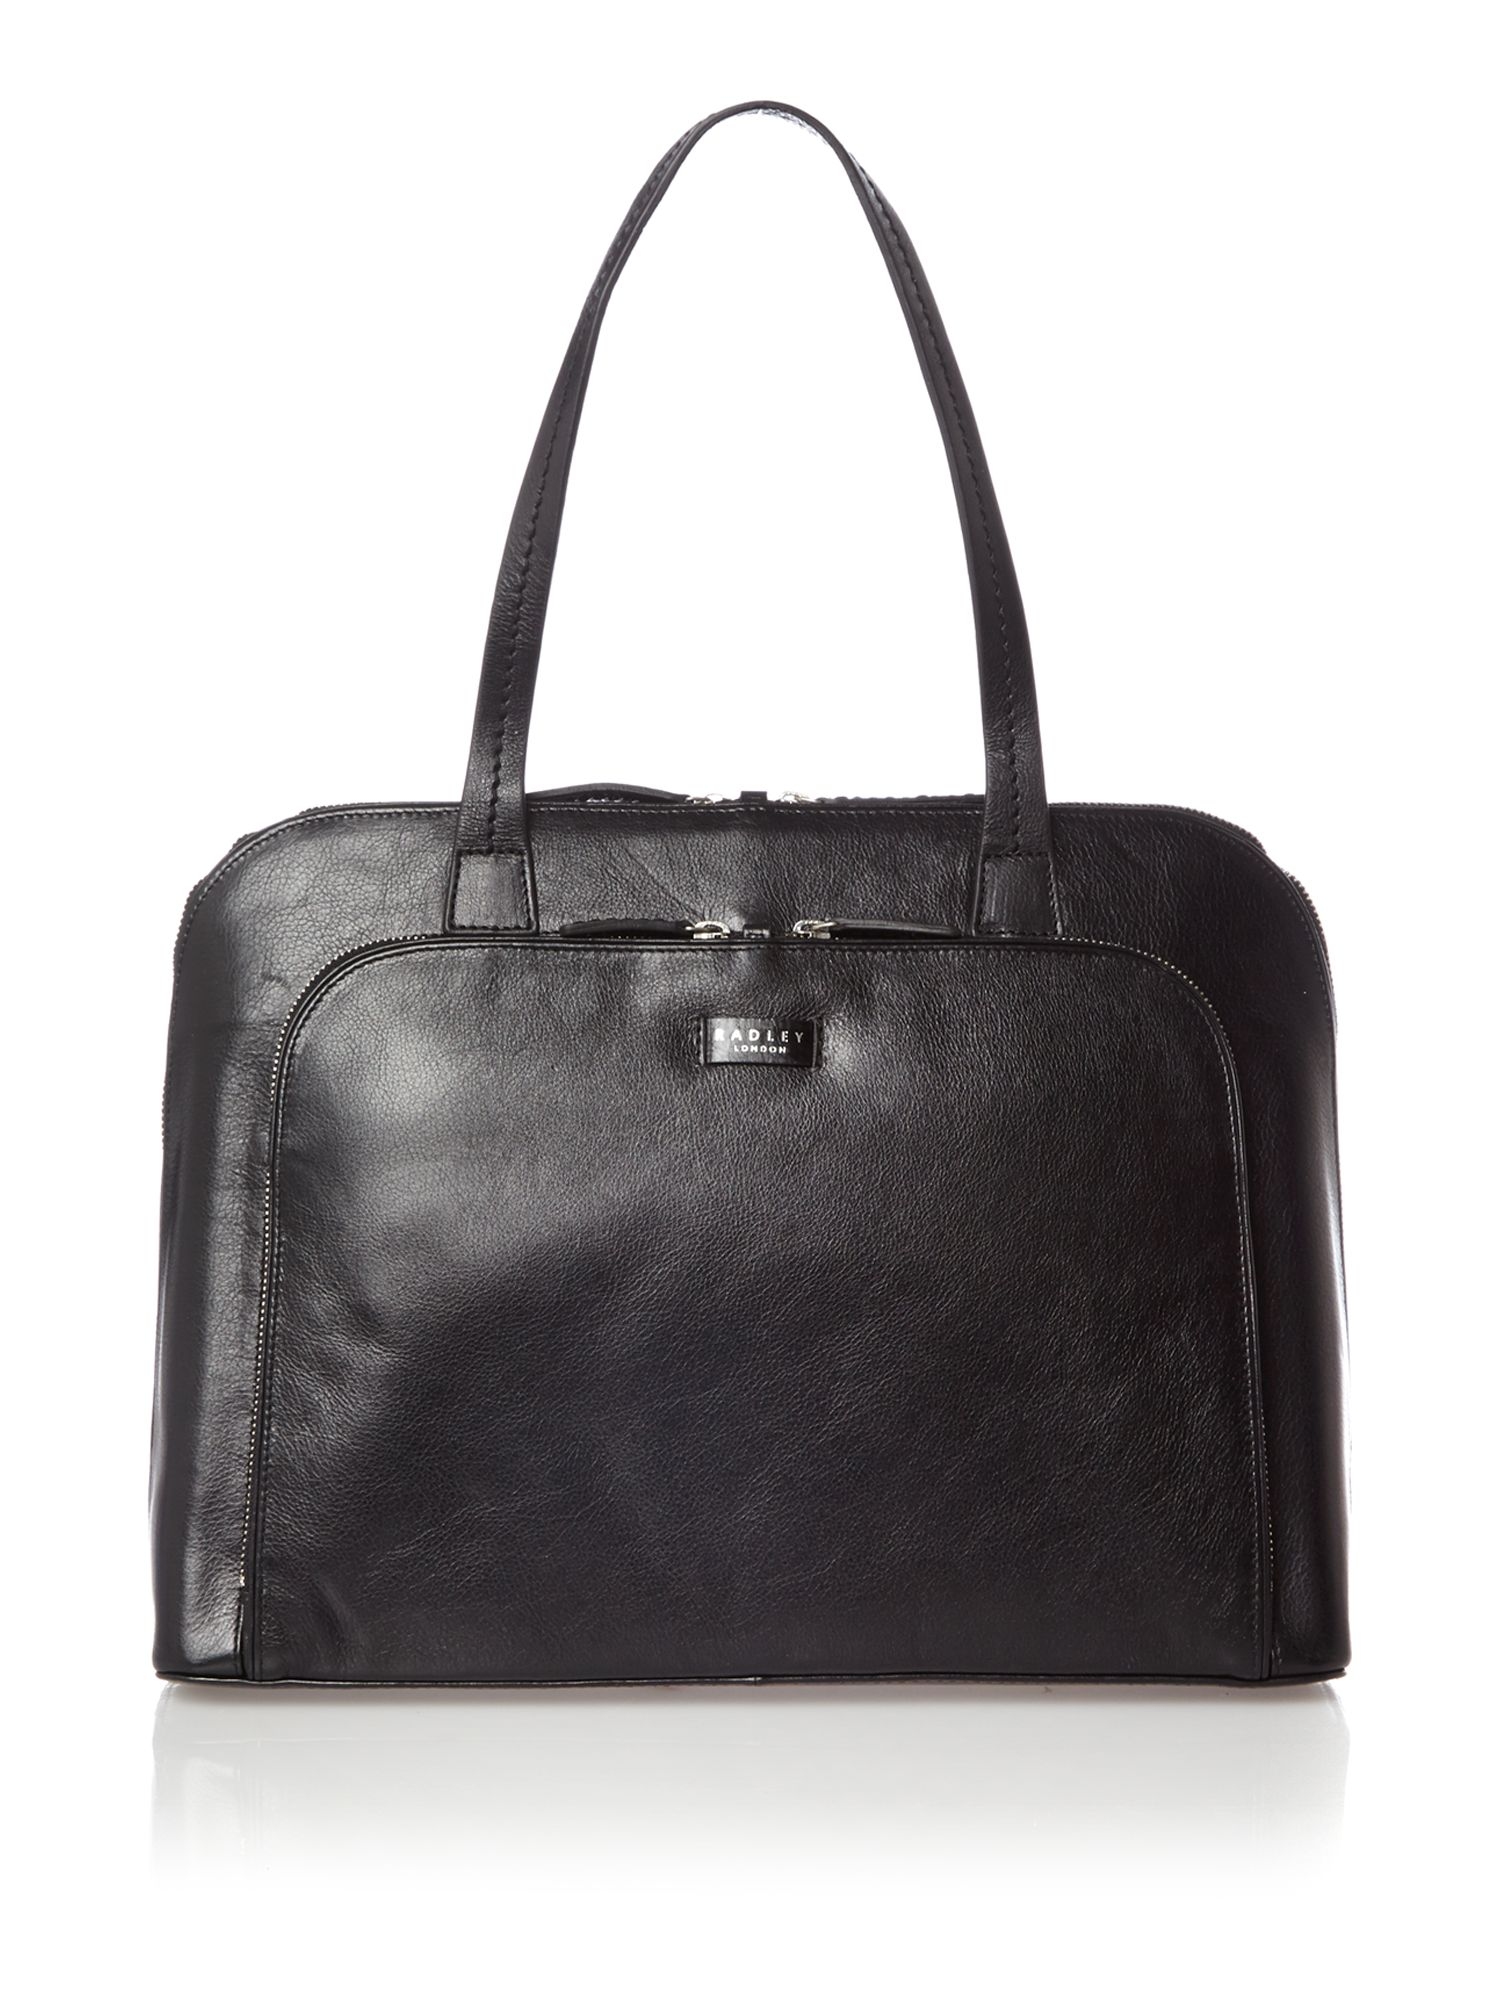 Pippin large ziptop leather black work bag